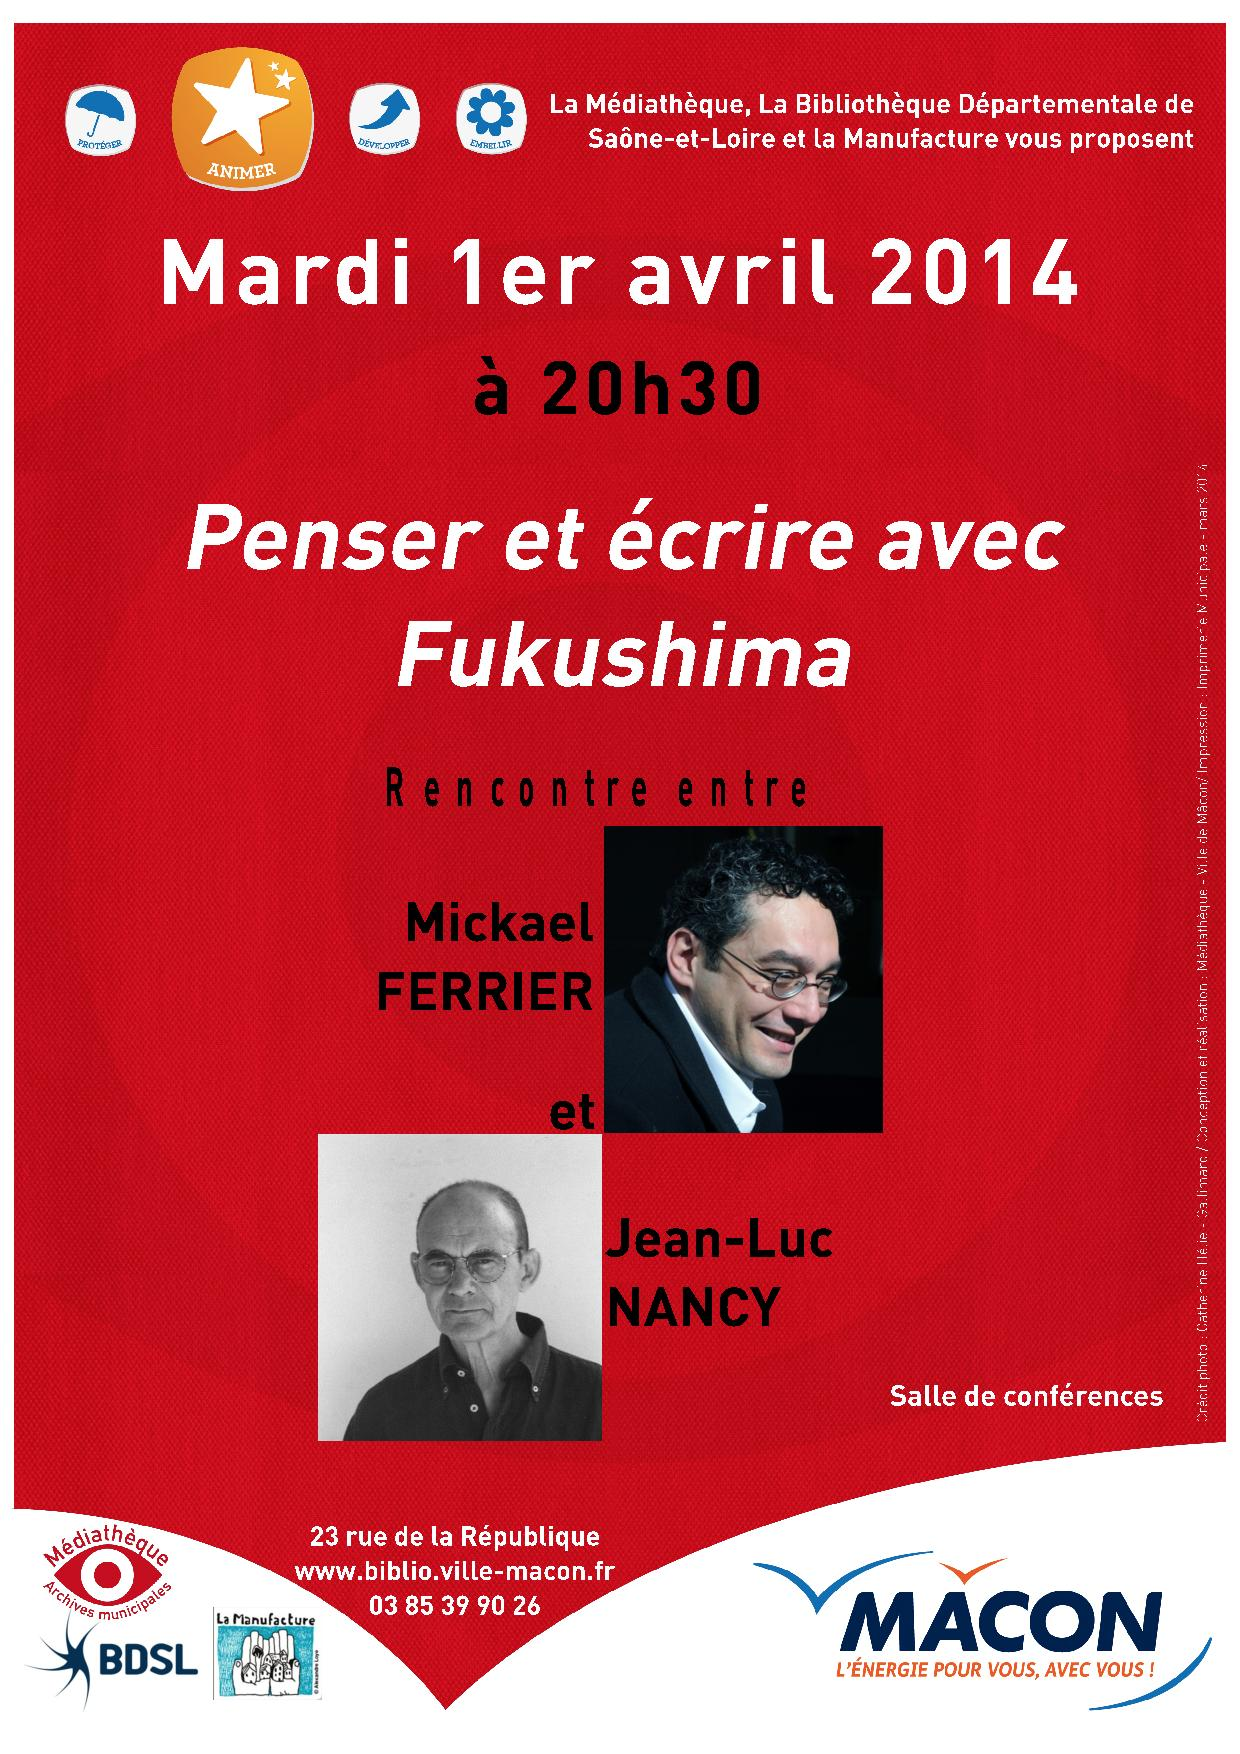 Michaël Ferrier-Jean-Luc Nancy, 2014